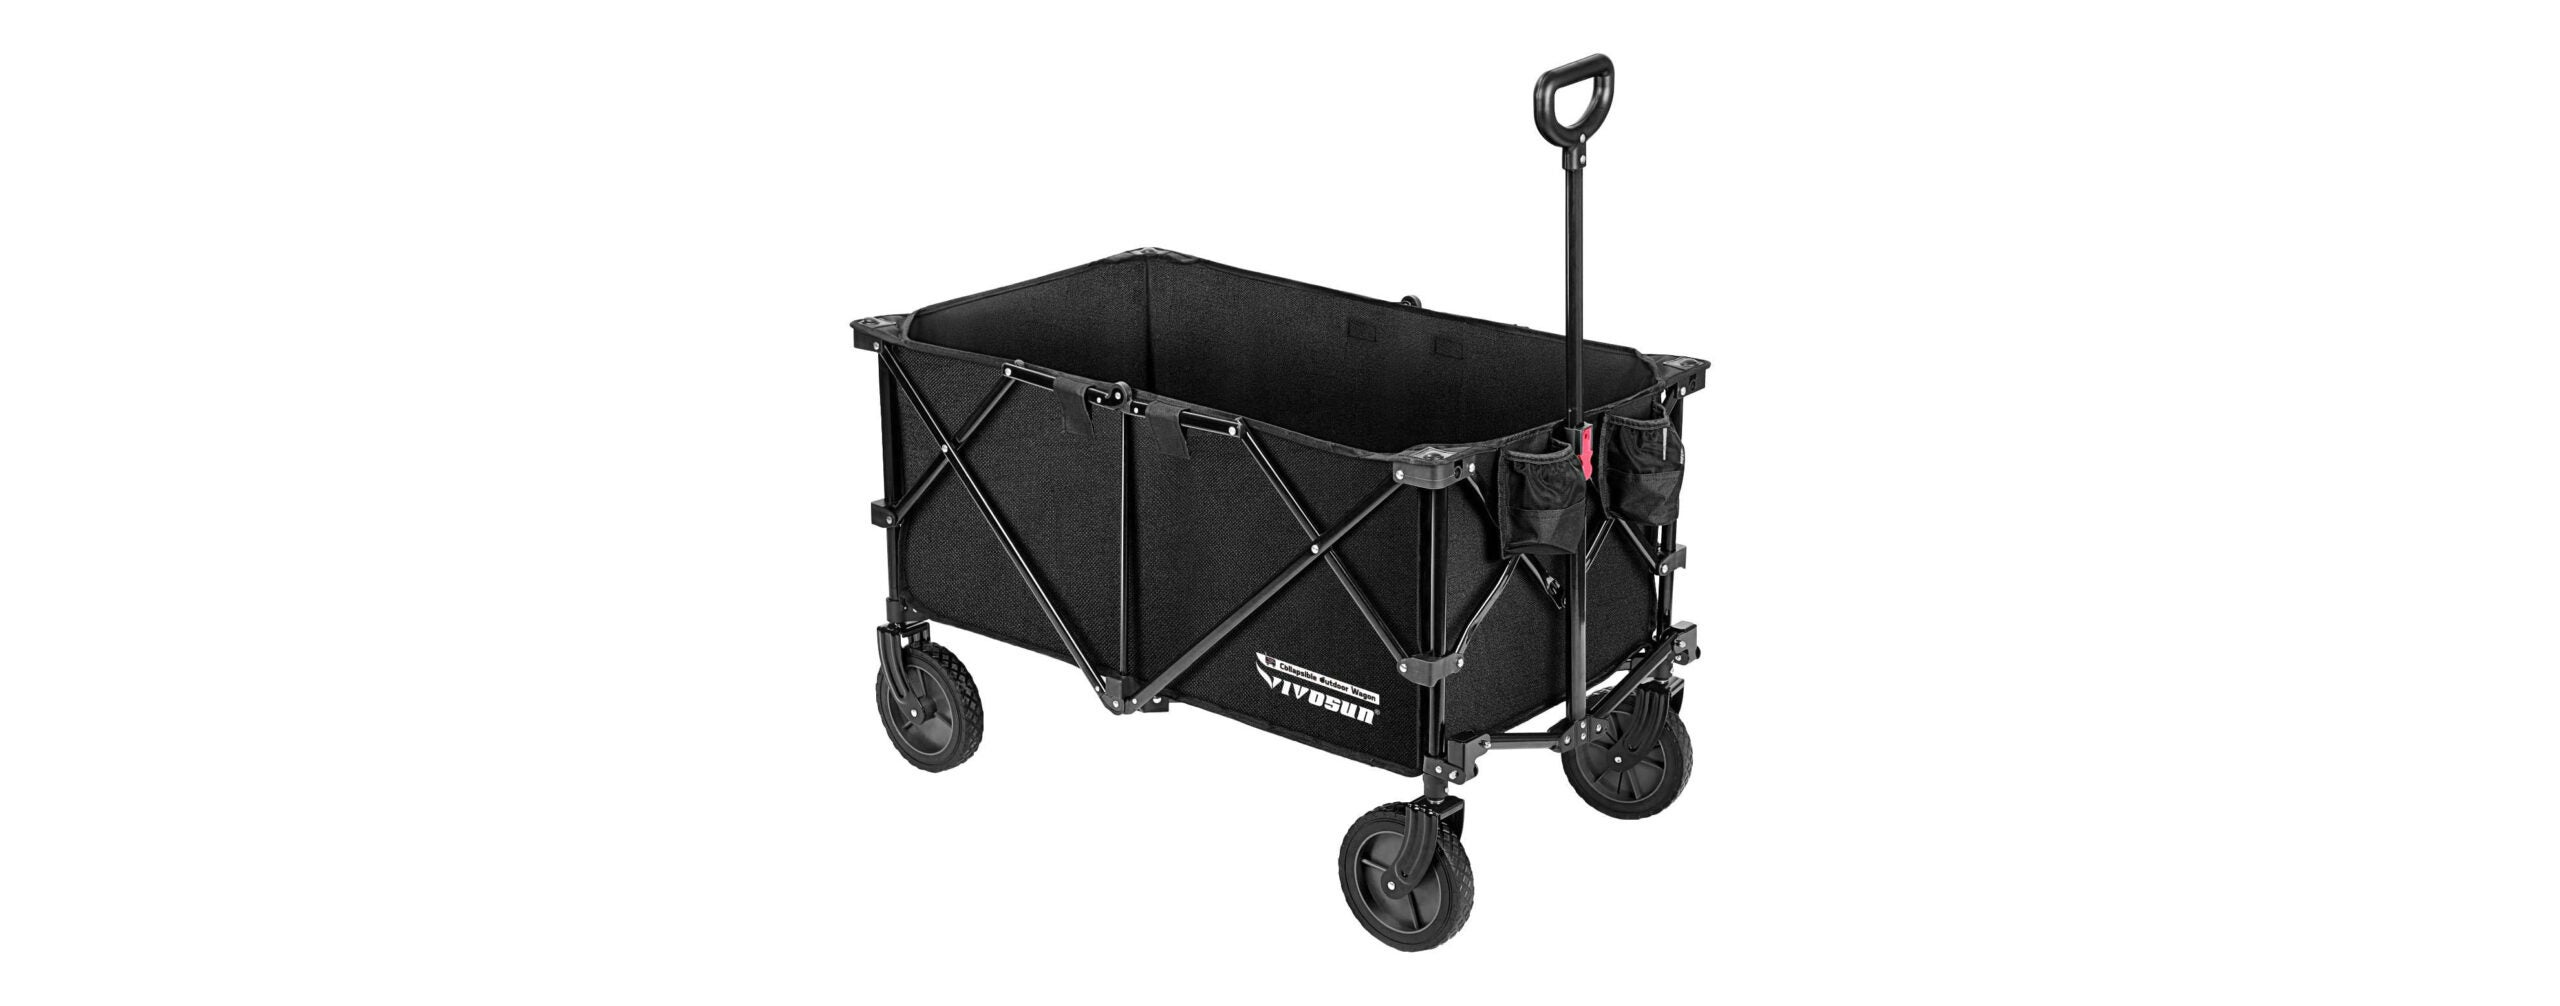 The Best Beach Wagons (Review and Buying Guide) in 2021